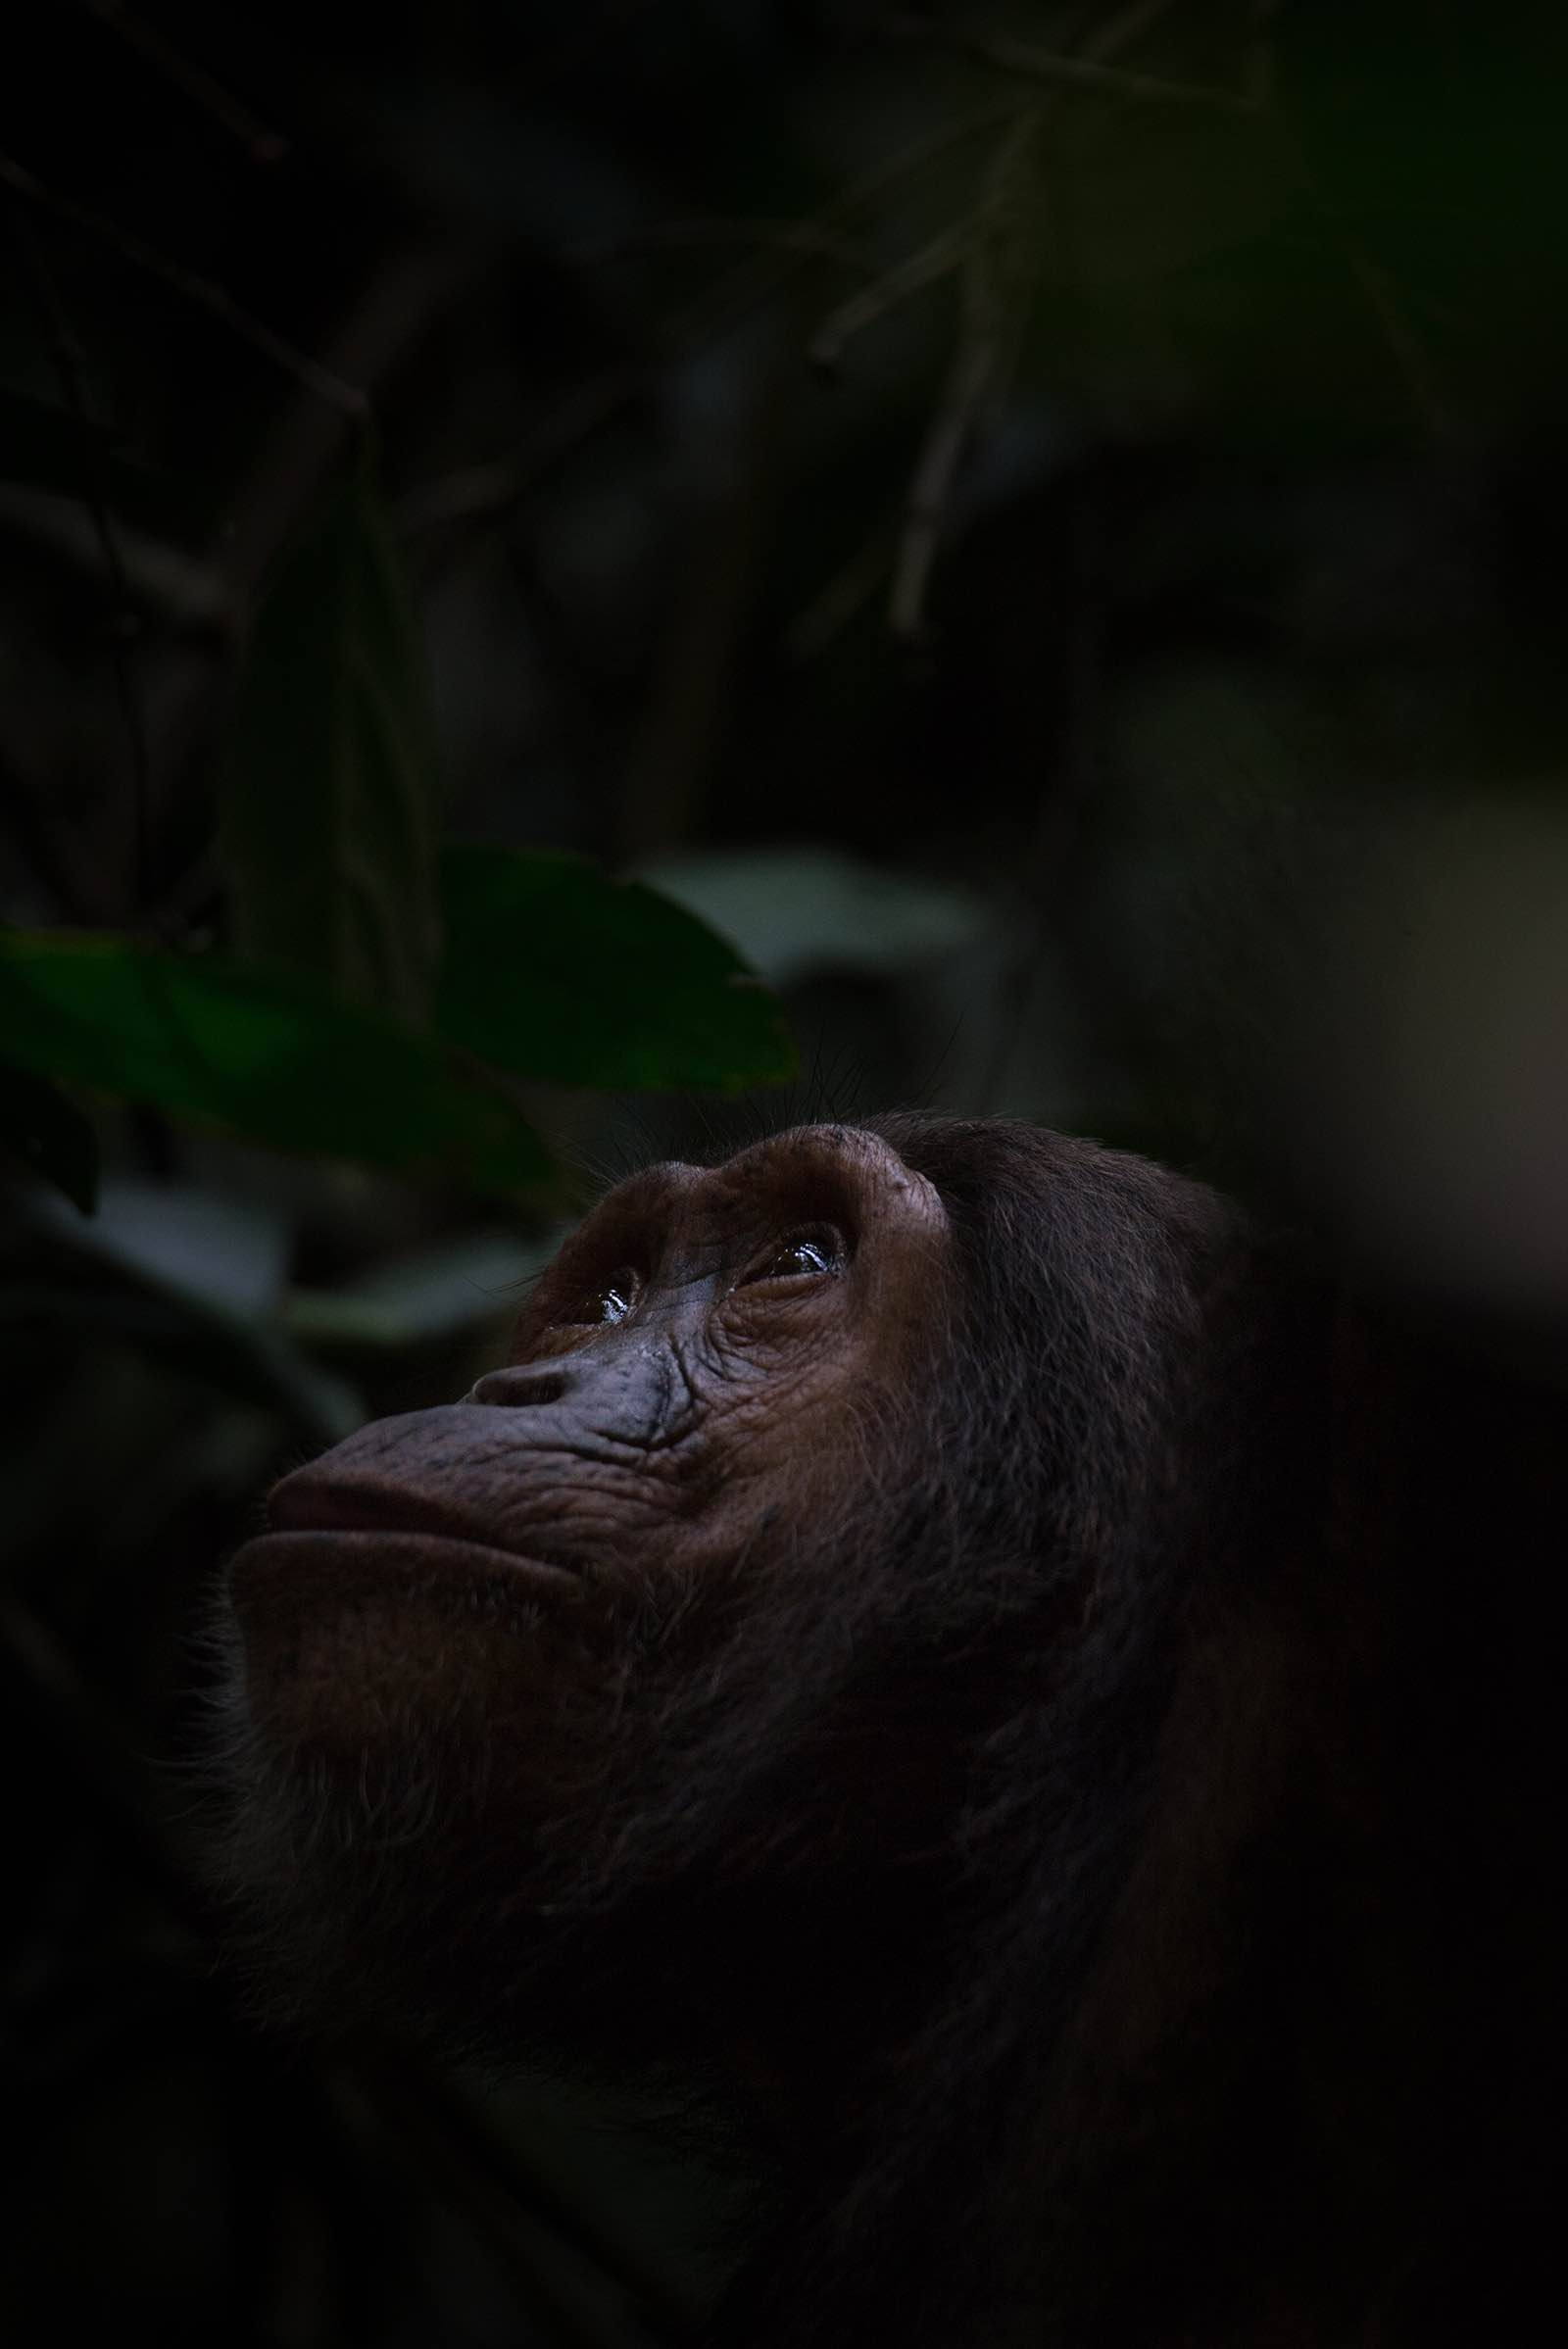 Looking up and watching other chimpanzees in the trees